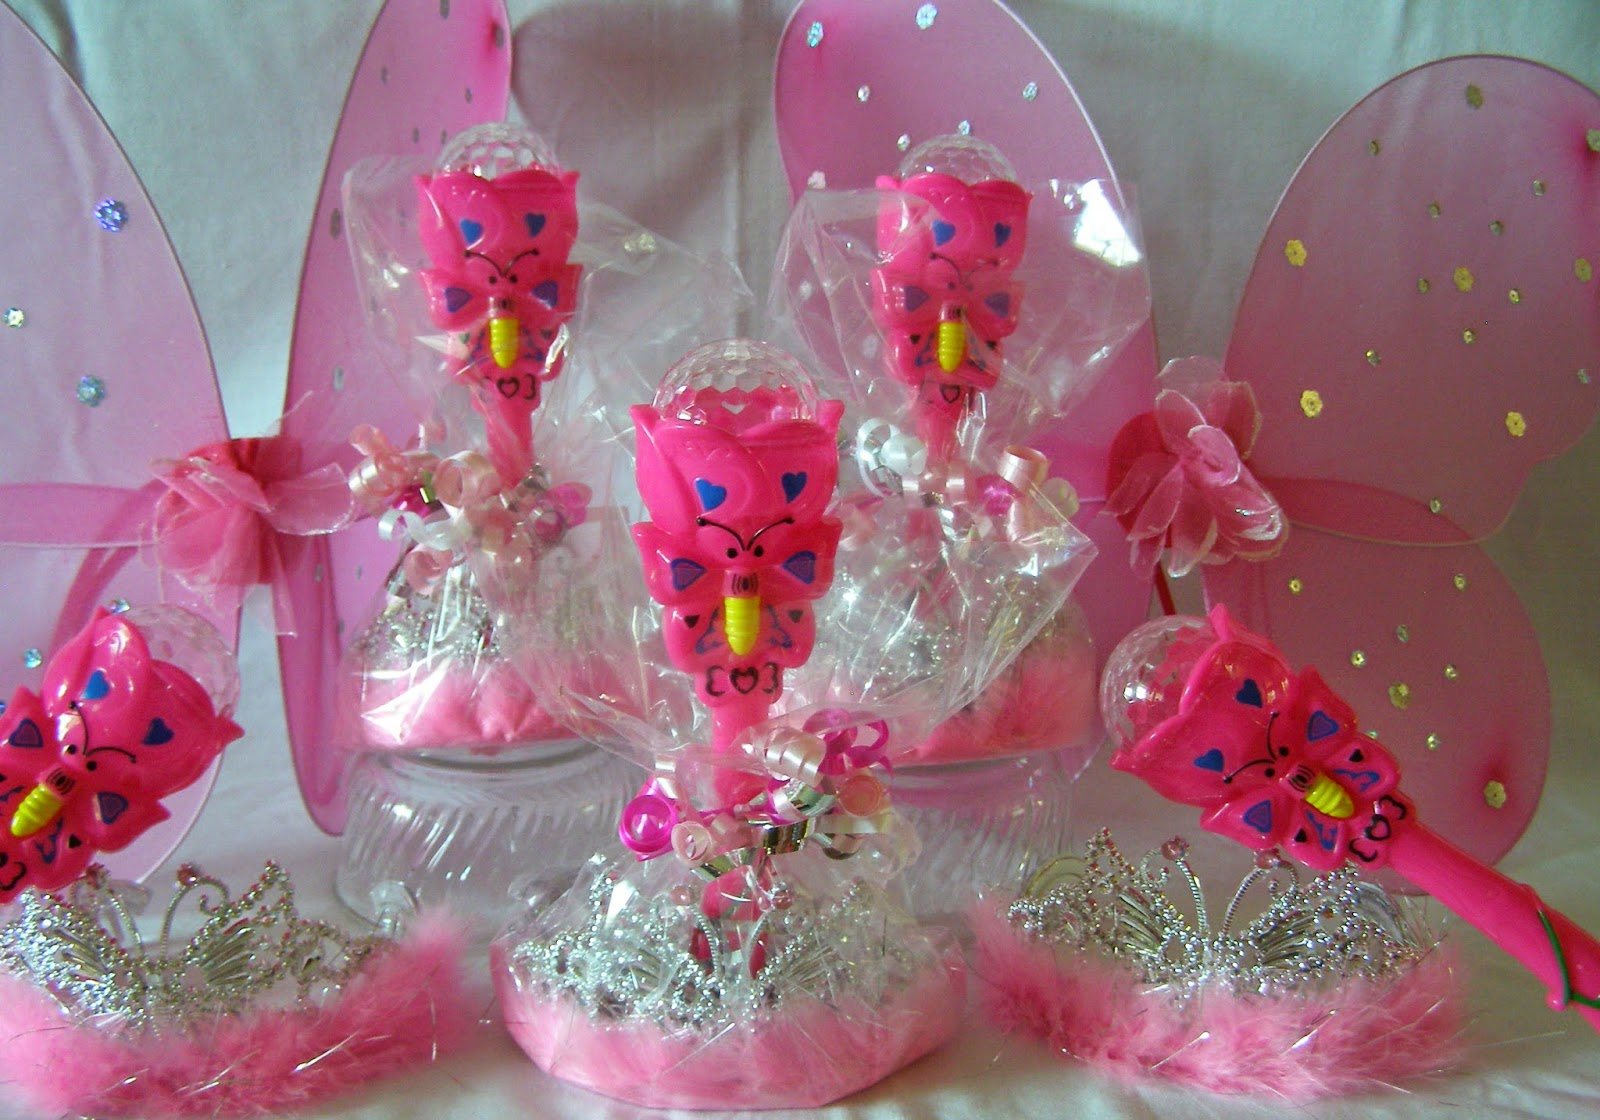 The Princess Birthday Blog: New Butterfly Wand and Tiara Favor